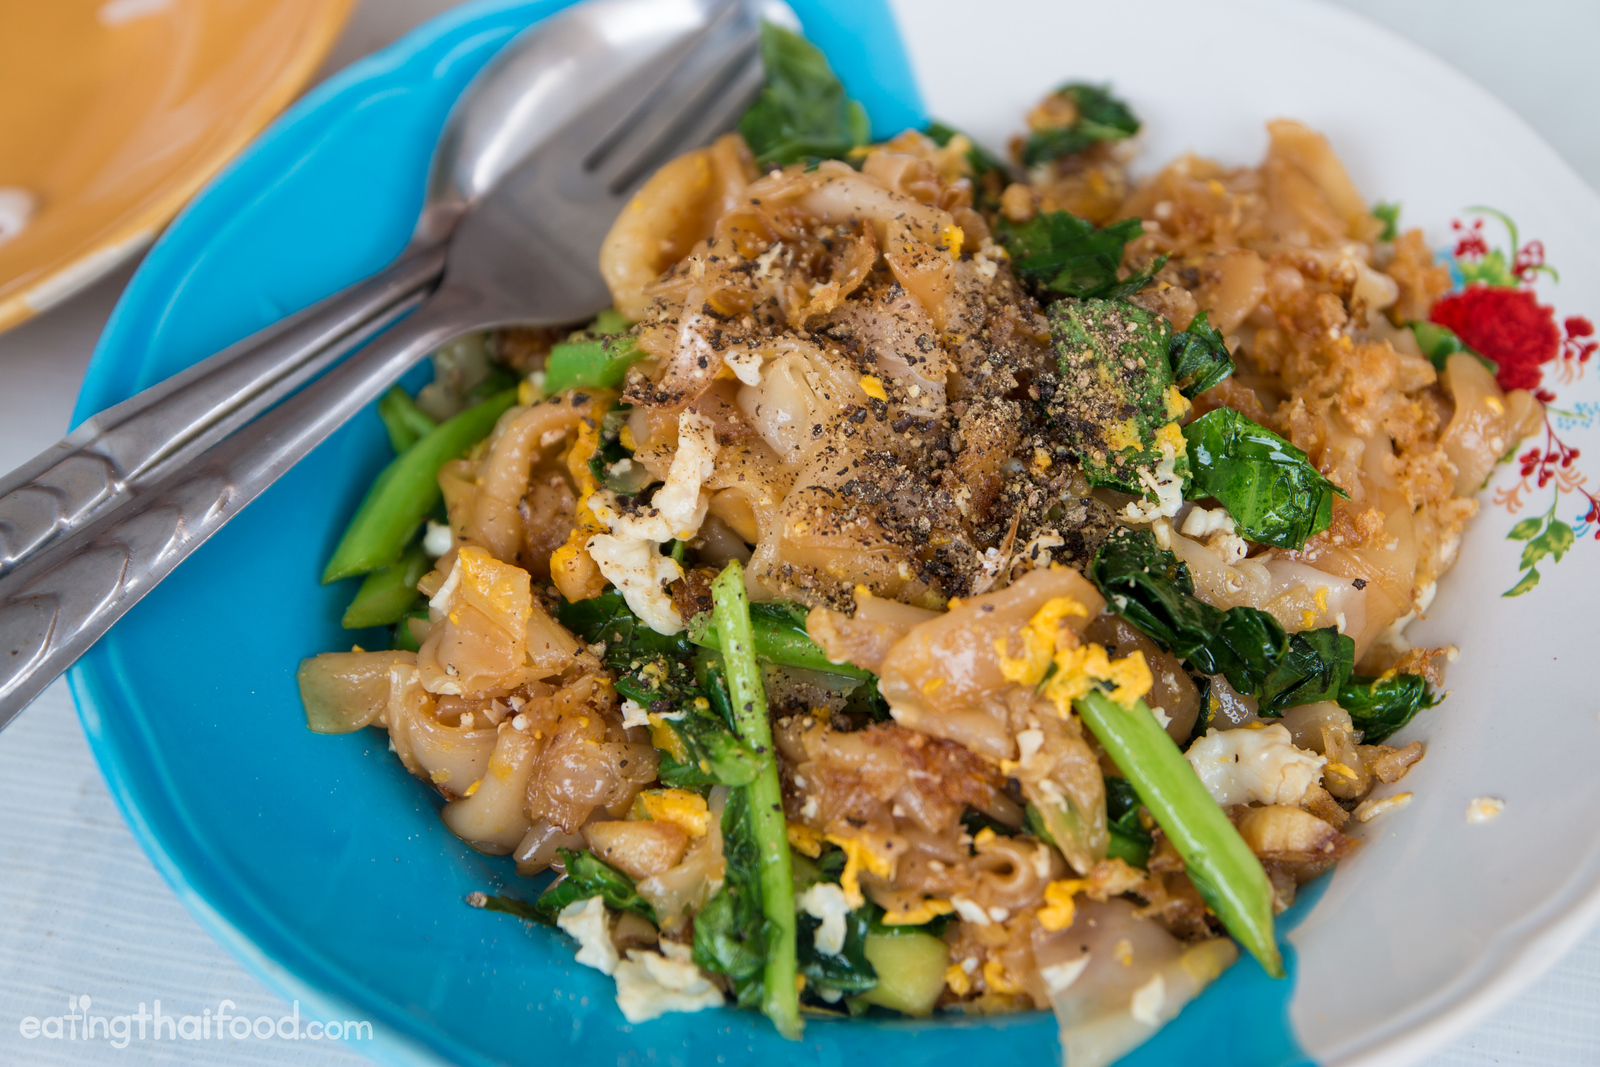 Authentic thai pad see ew recipe street food style thai pad see ew recipe forumfinder Image collections